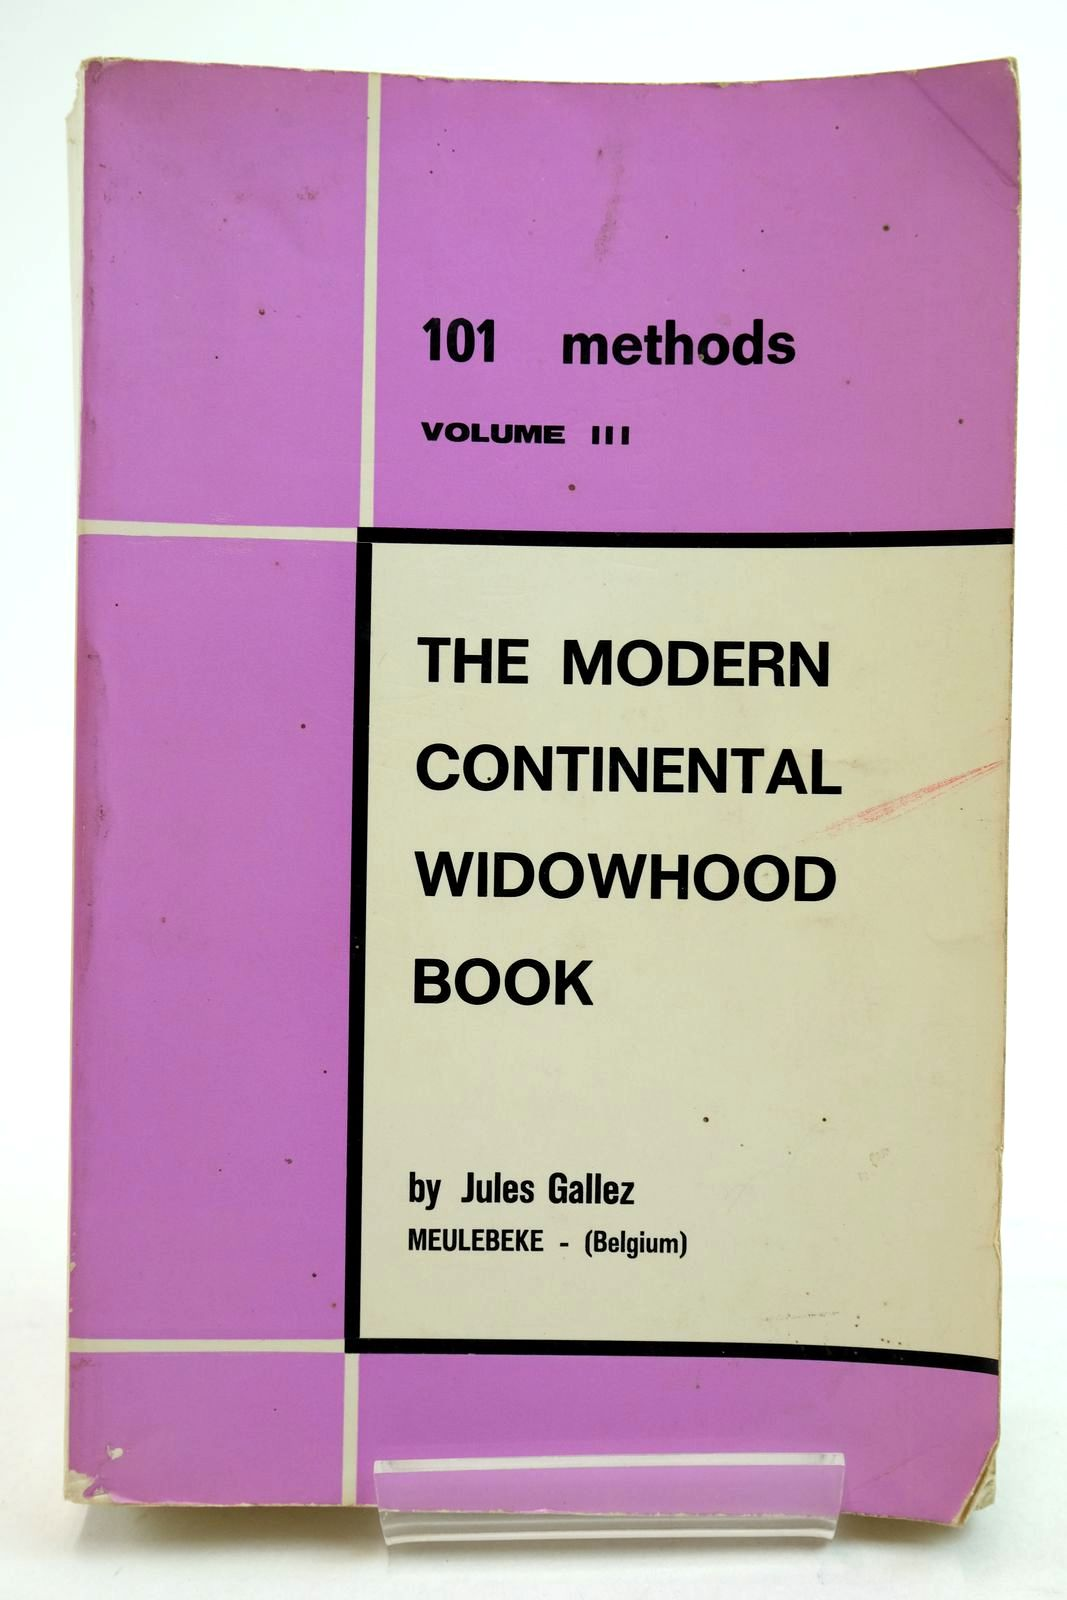 Photo of 101 METHODS VOLUME III THE MODERN CONTINENTAL WIDOWHOOD BOOK- Stock Number: 2134816